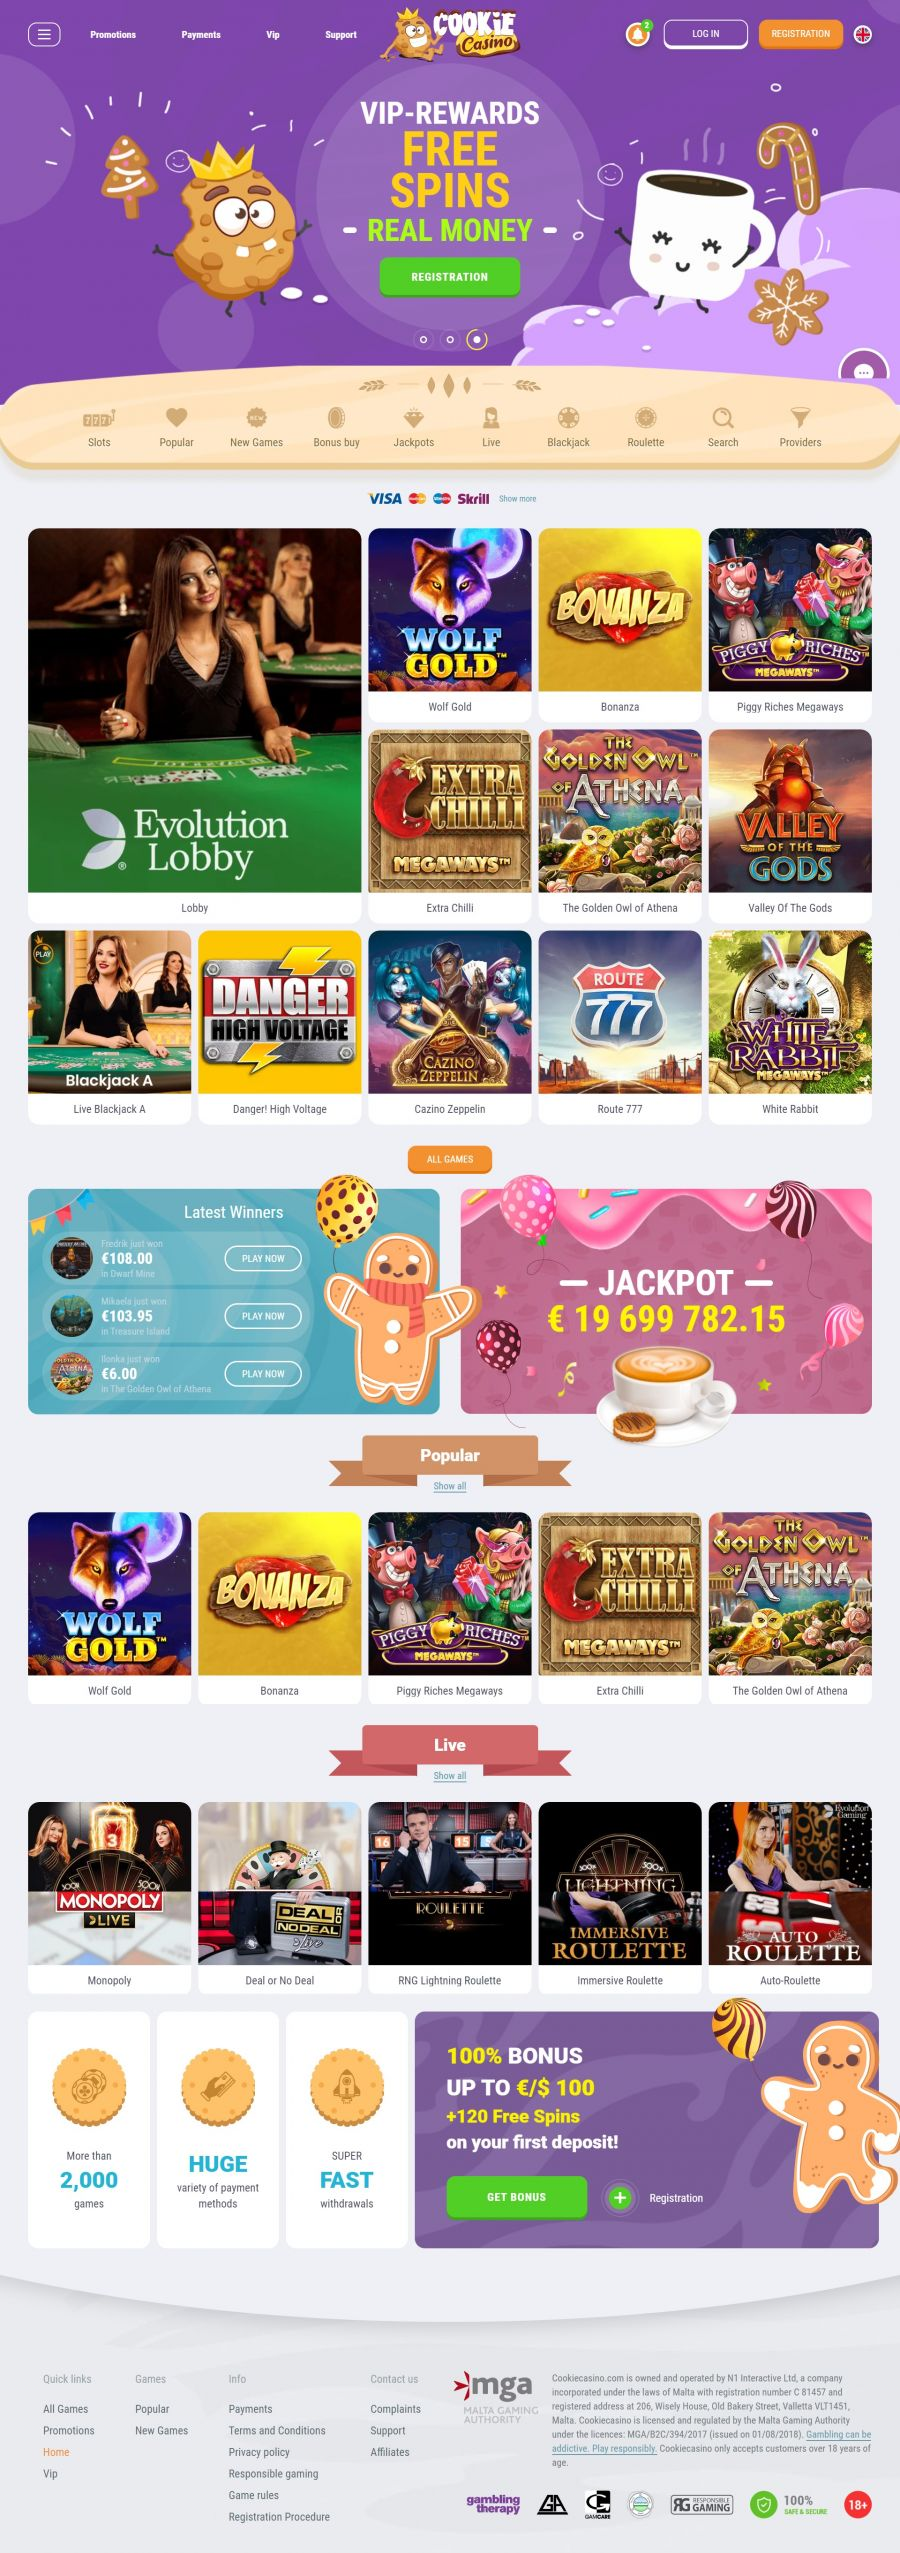 Cookie Casino  screenshot